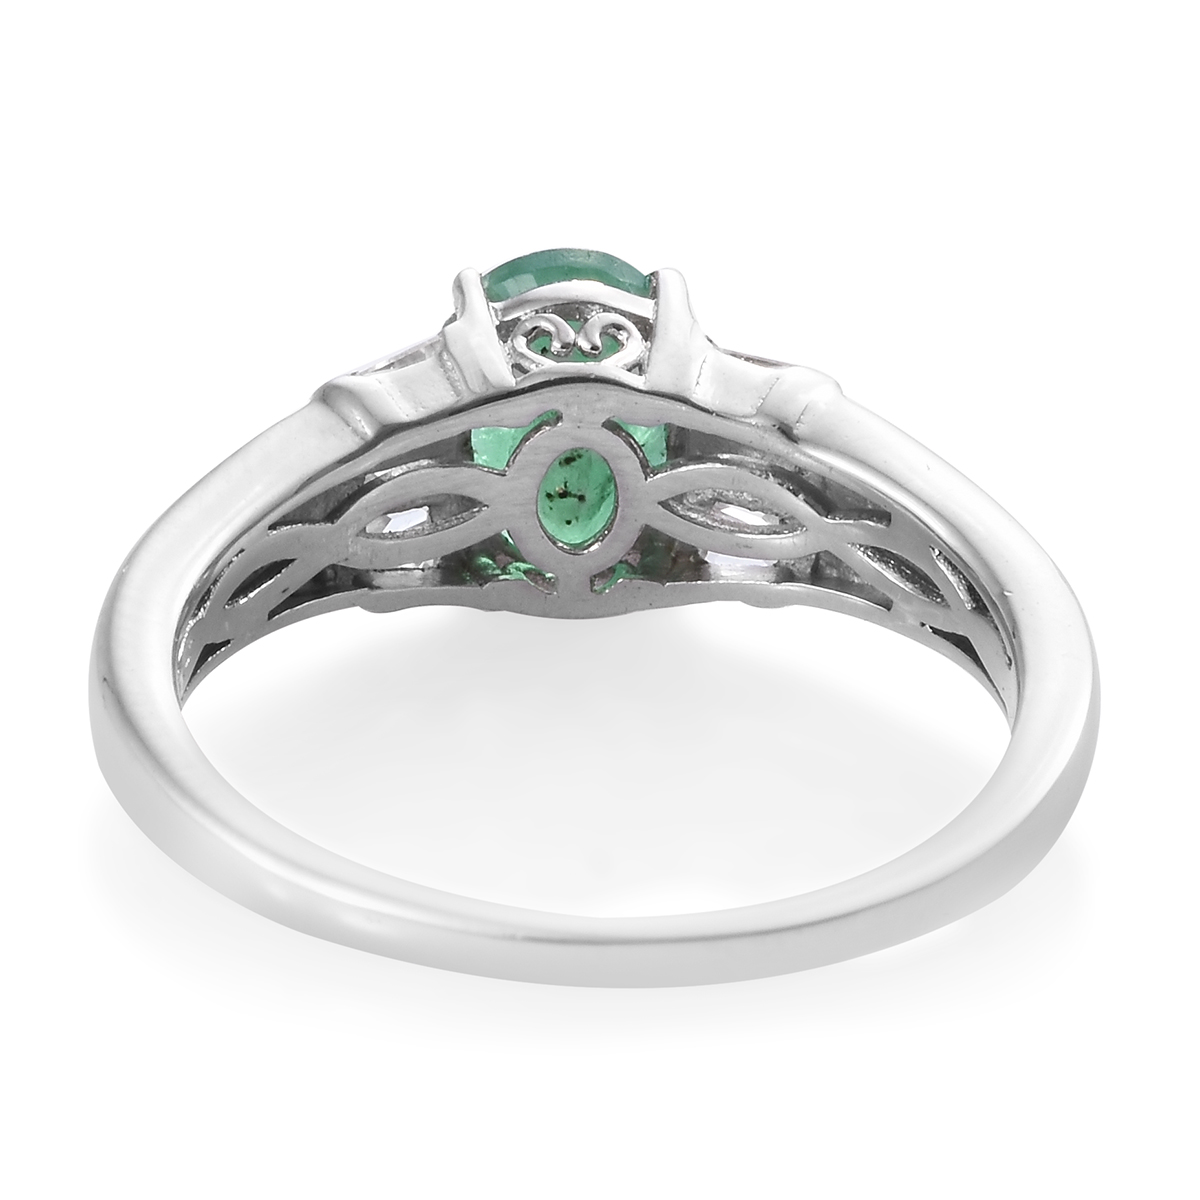 Socoto Emerald, Cambodian Zircon Ring in Platinum Over Sterling Silver (Size 8.0) 2.25 ctw